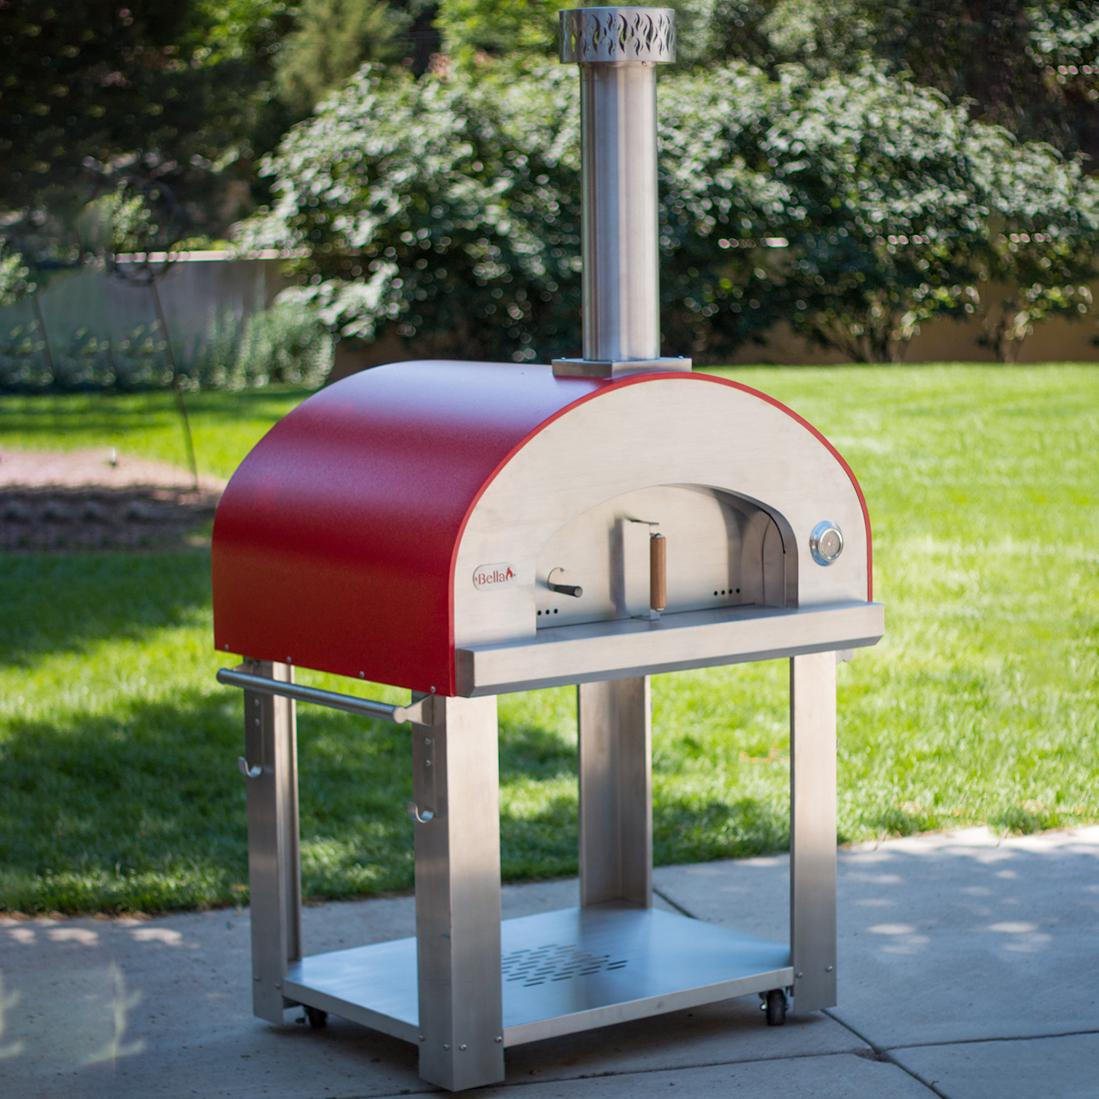 "Bella Outdoor Living Bella Grande 36"" Outdoor Wood-fired Pizza Oven On Cart - Red - Begs36r"